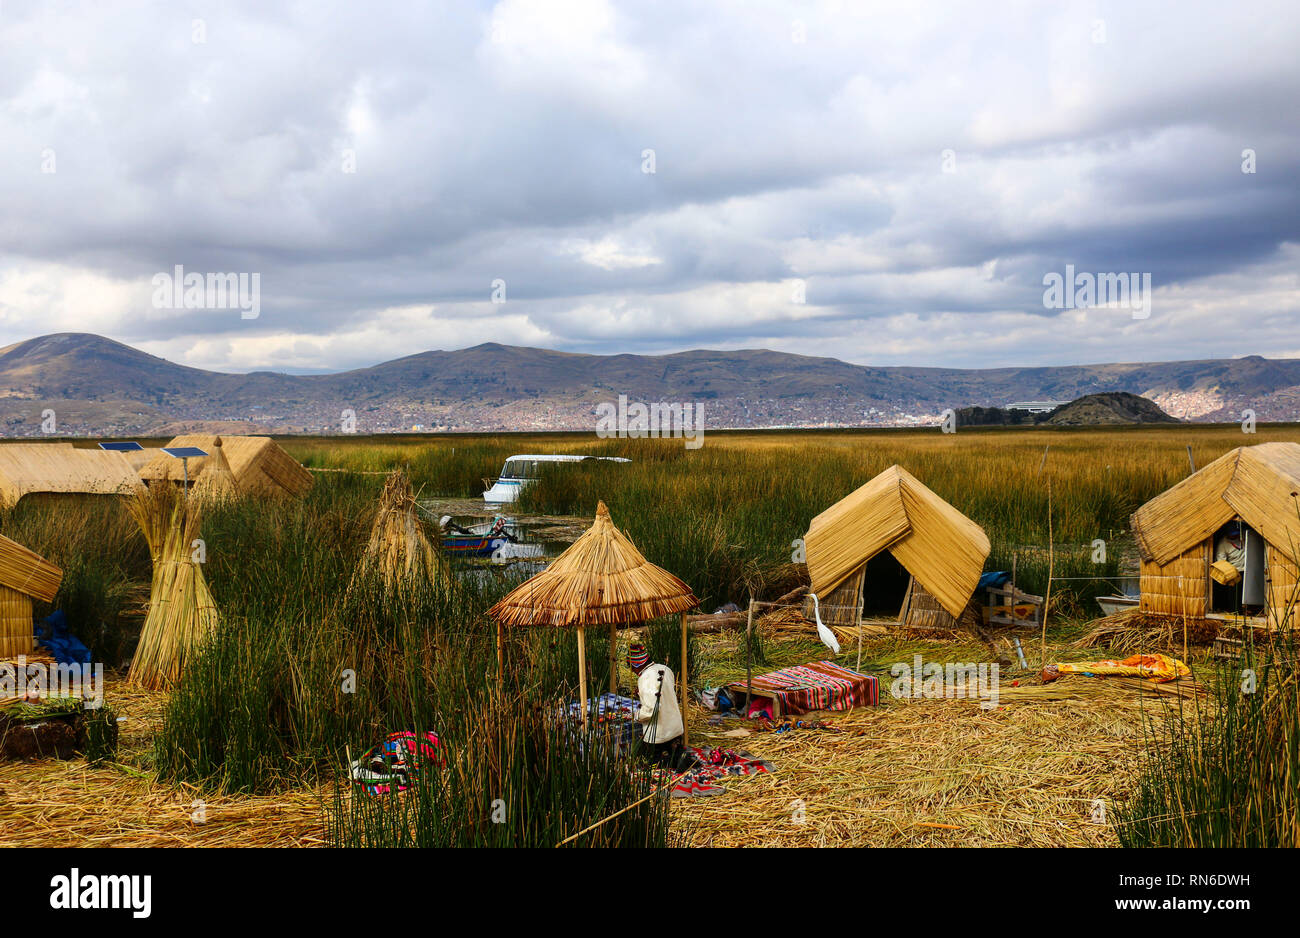 Traditional reed houses on the island Uros, Lake Titicaca, Peru - Stock Image